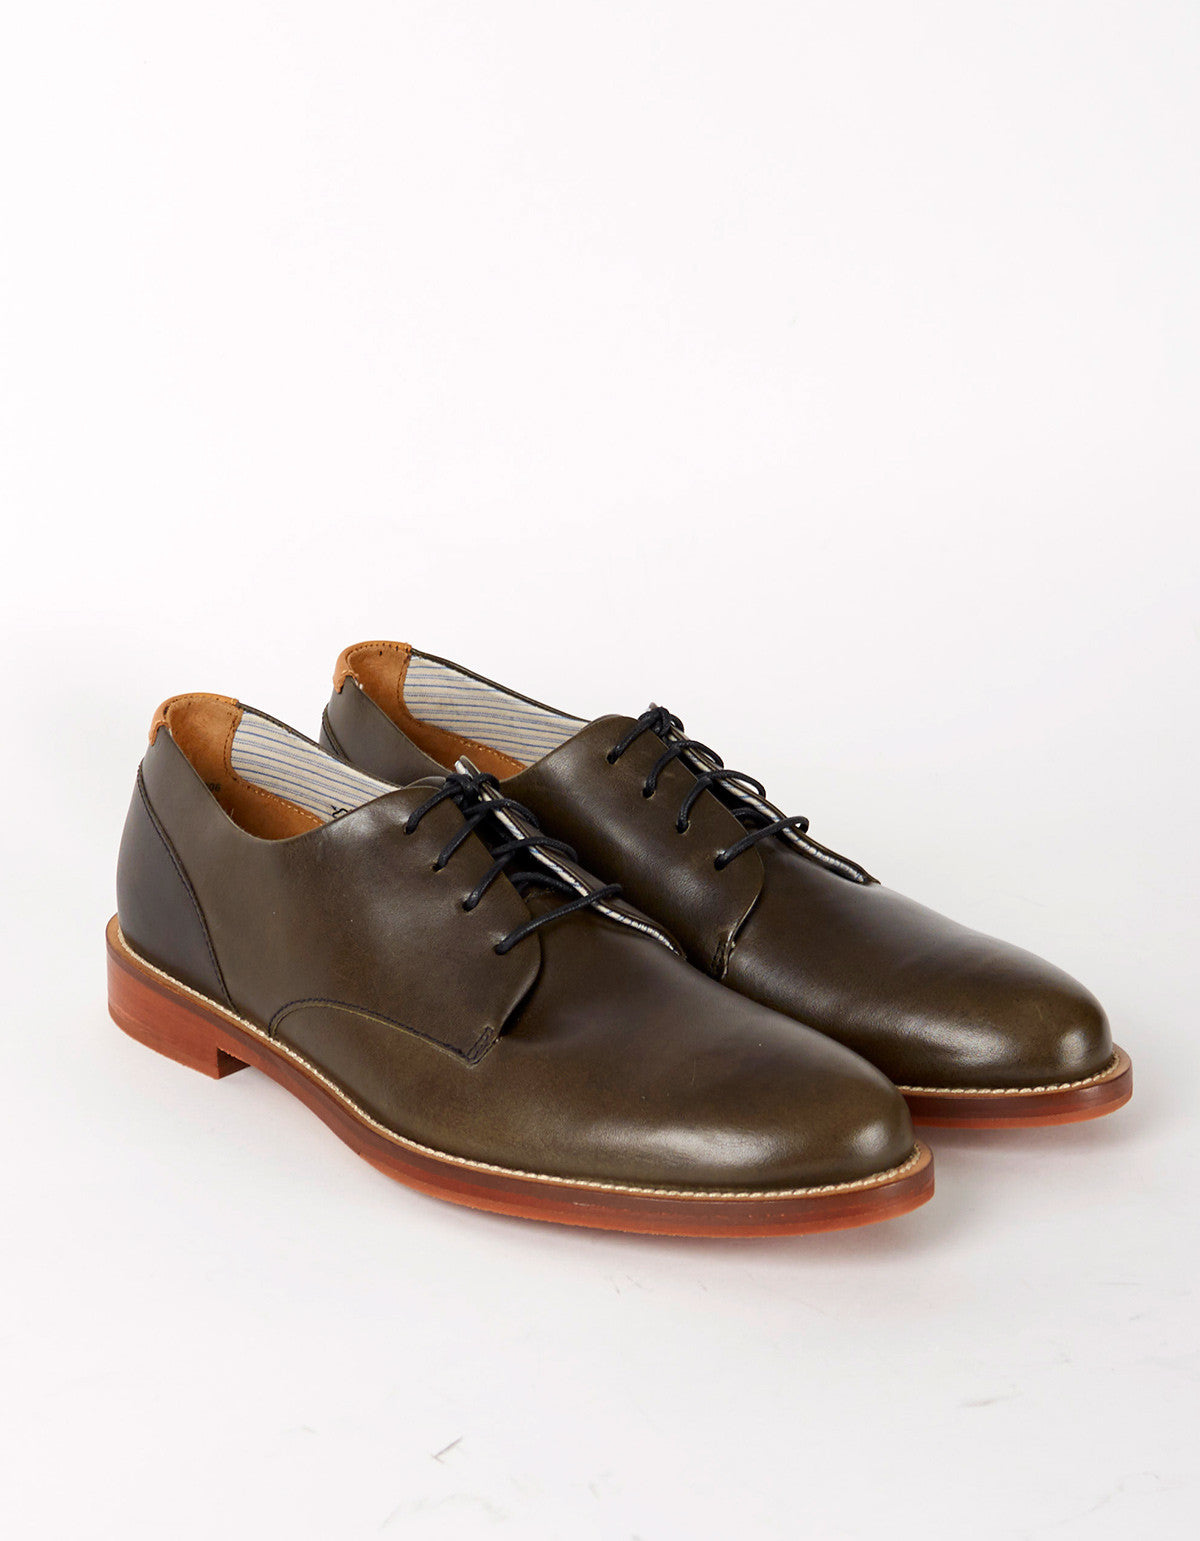 J Shoes William Derby Black - Still Life - 4